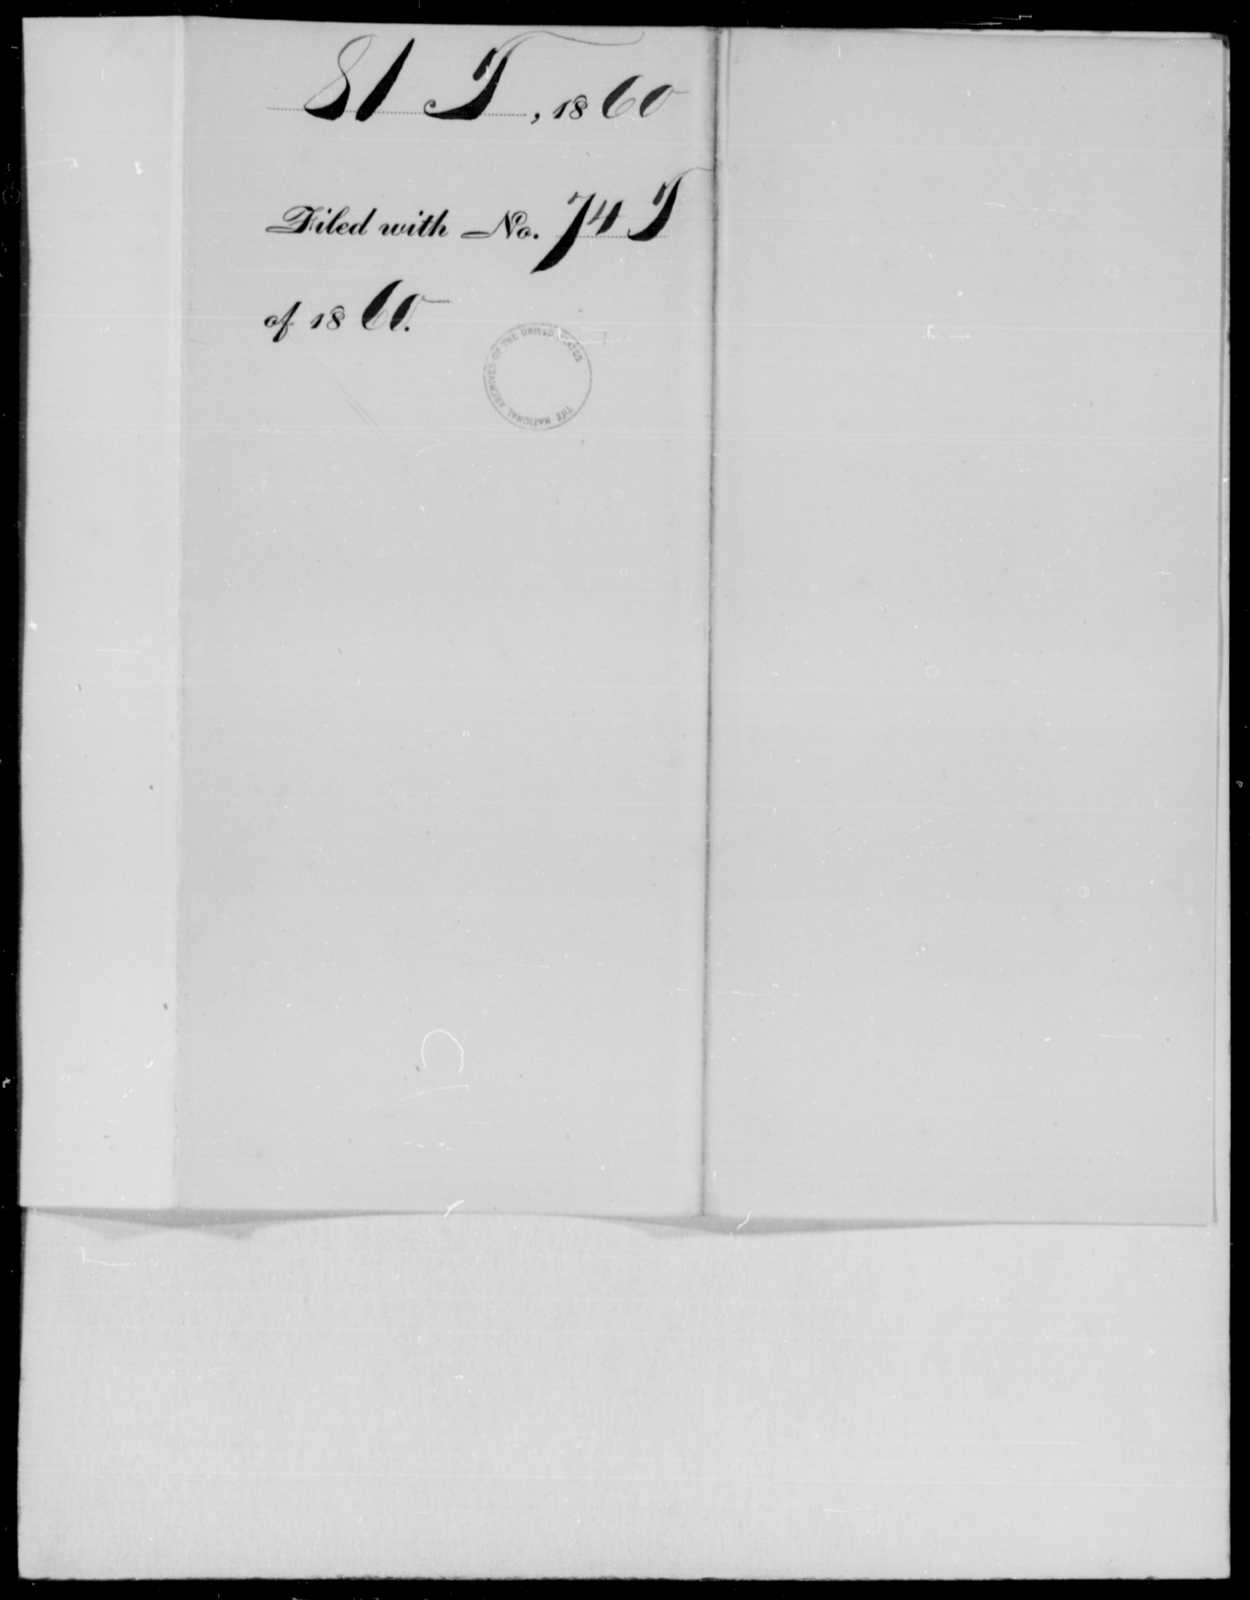 [Blank], [Blank] - State: [Blank] - Year: 1860 - File Number: T81